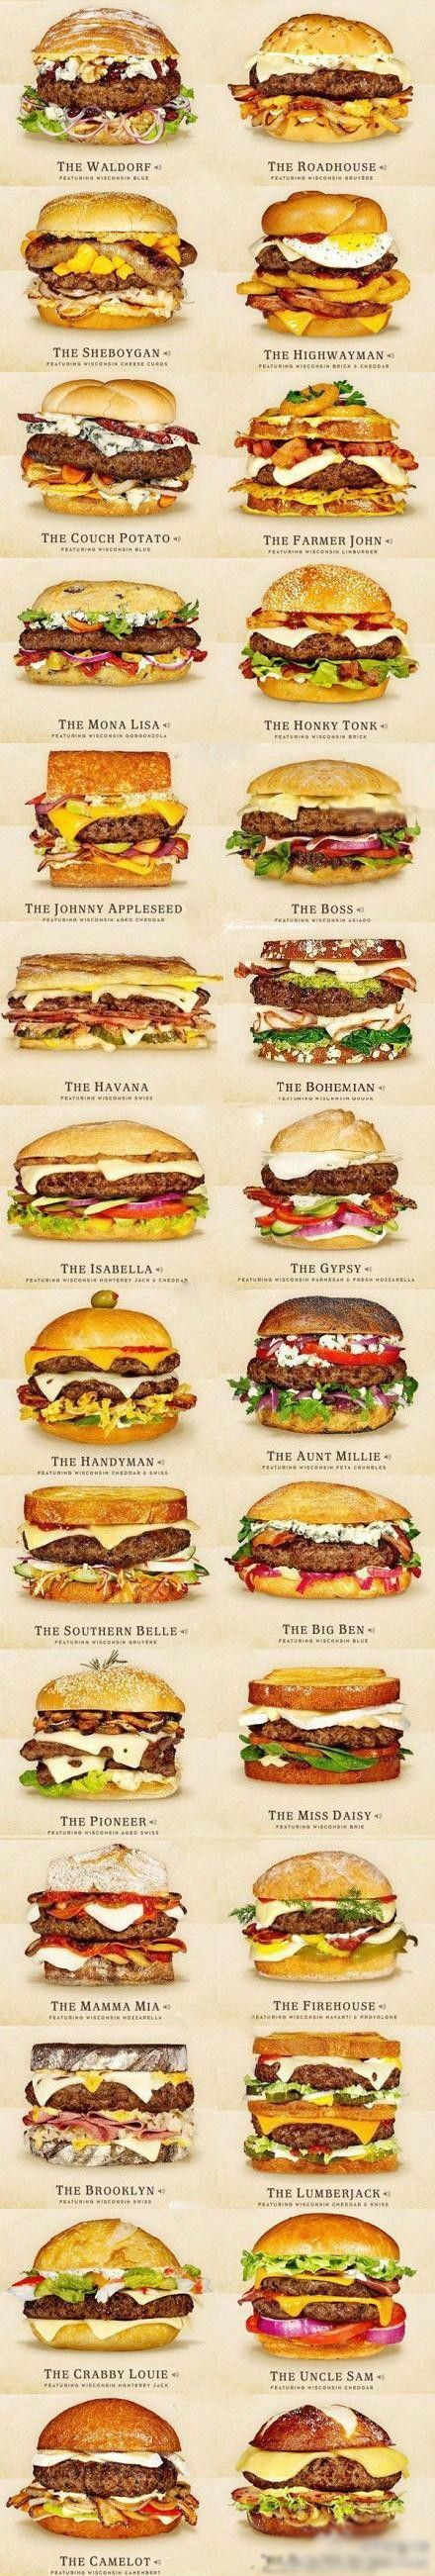 Cheeseburger ideas. I have hit the mother-load.